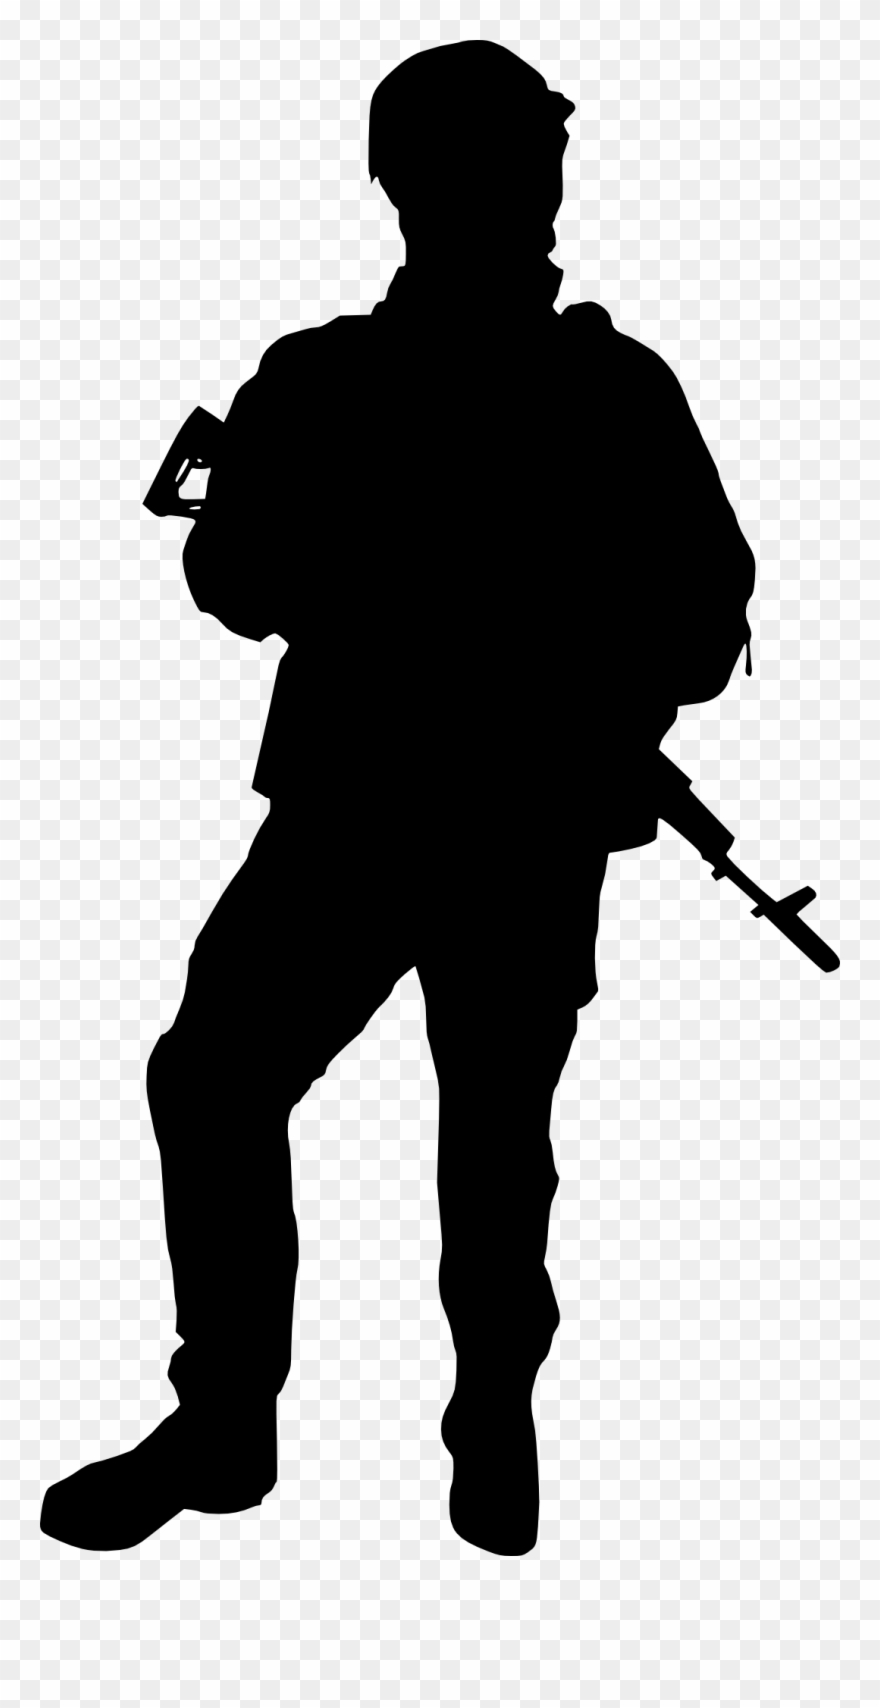 army silhouette military series cool man silhouette stickers removable army silhouette